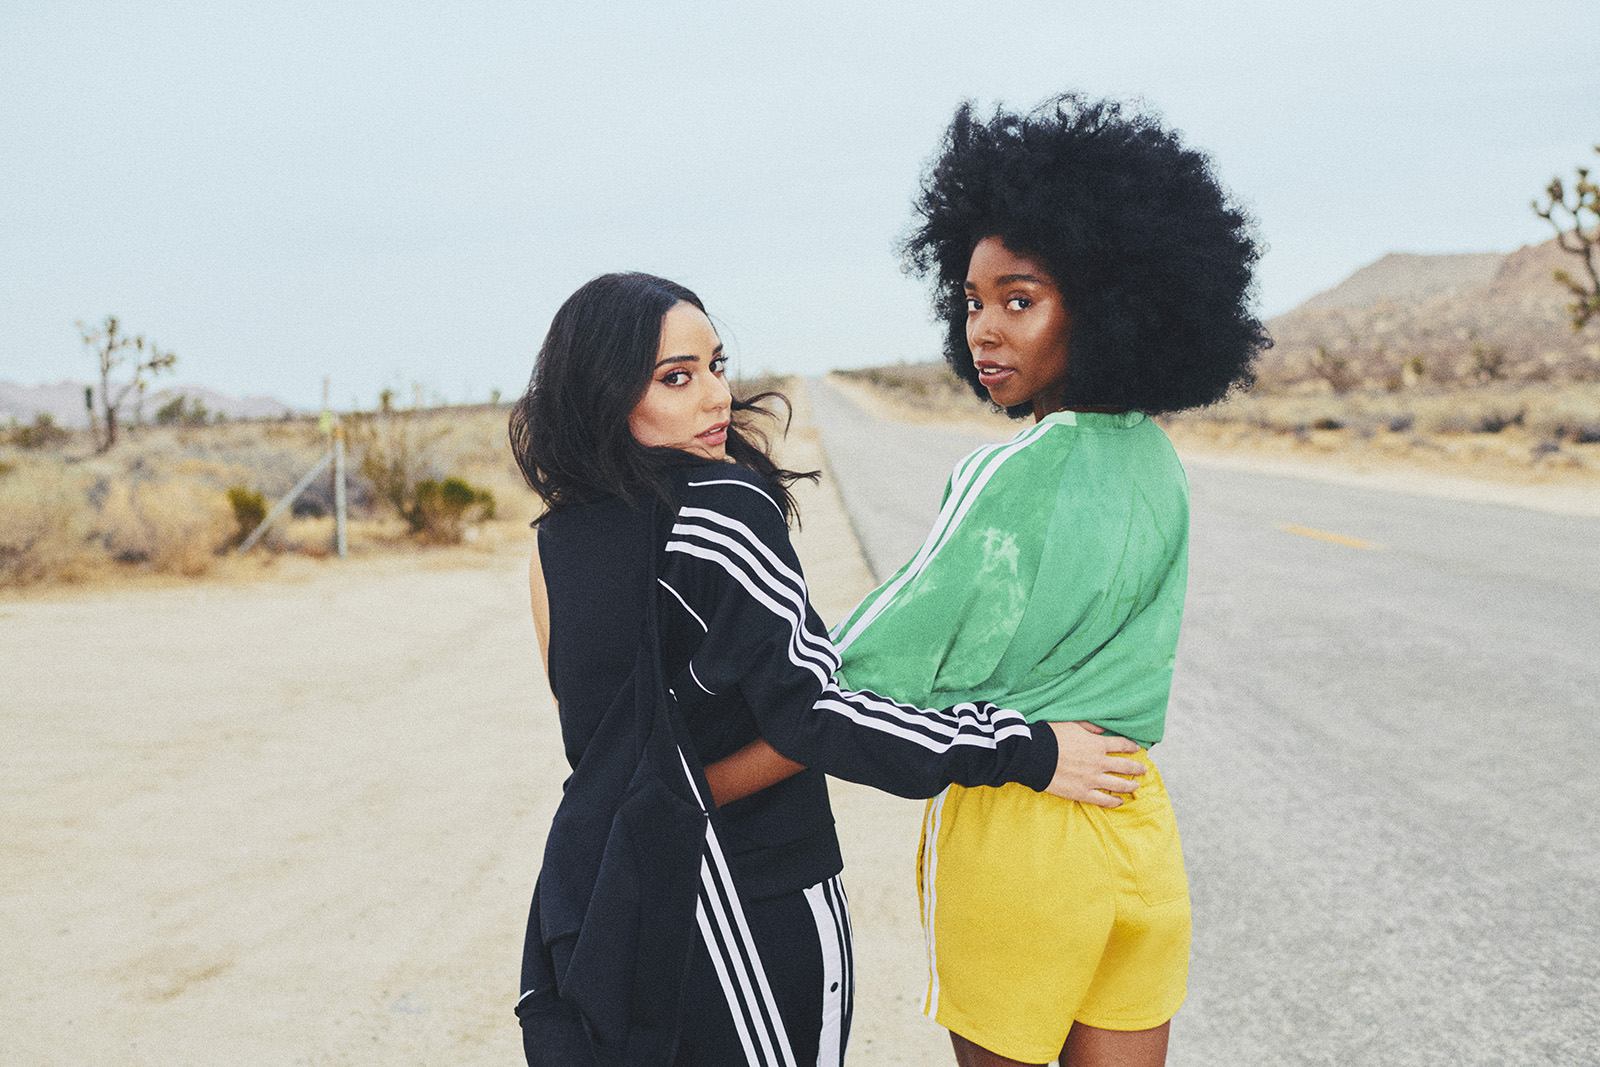 Two women, one in all black with her track jacket hanging off one shoulder and the other in bright green and yellow adidas gear stand on the side of a desert road with arms around each other's waists, looking over their shoulders.